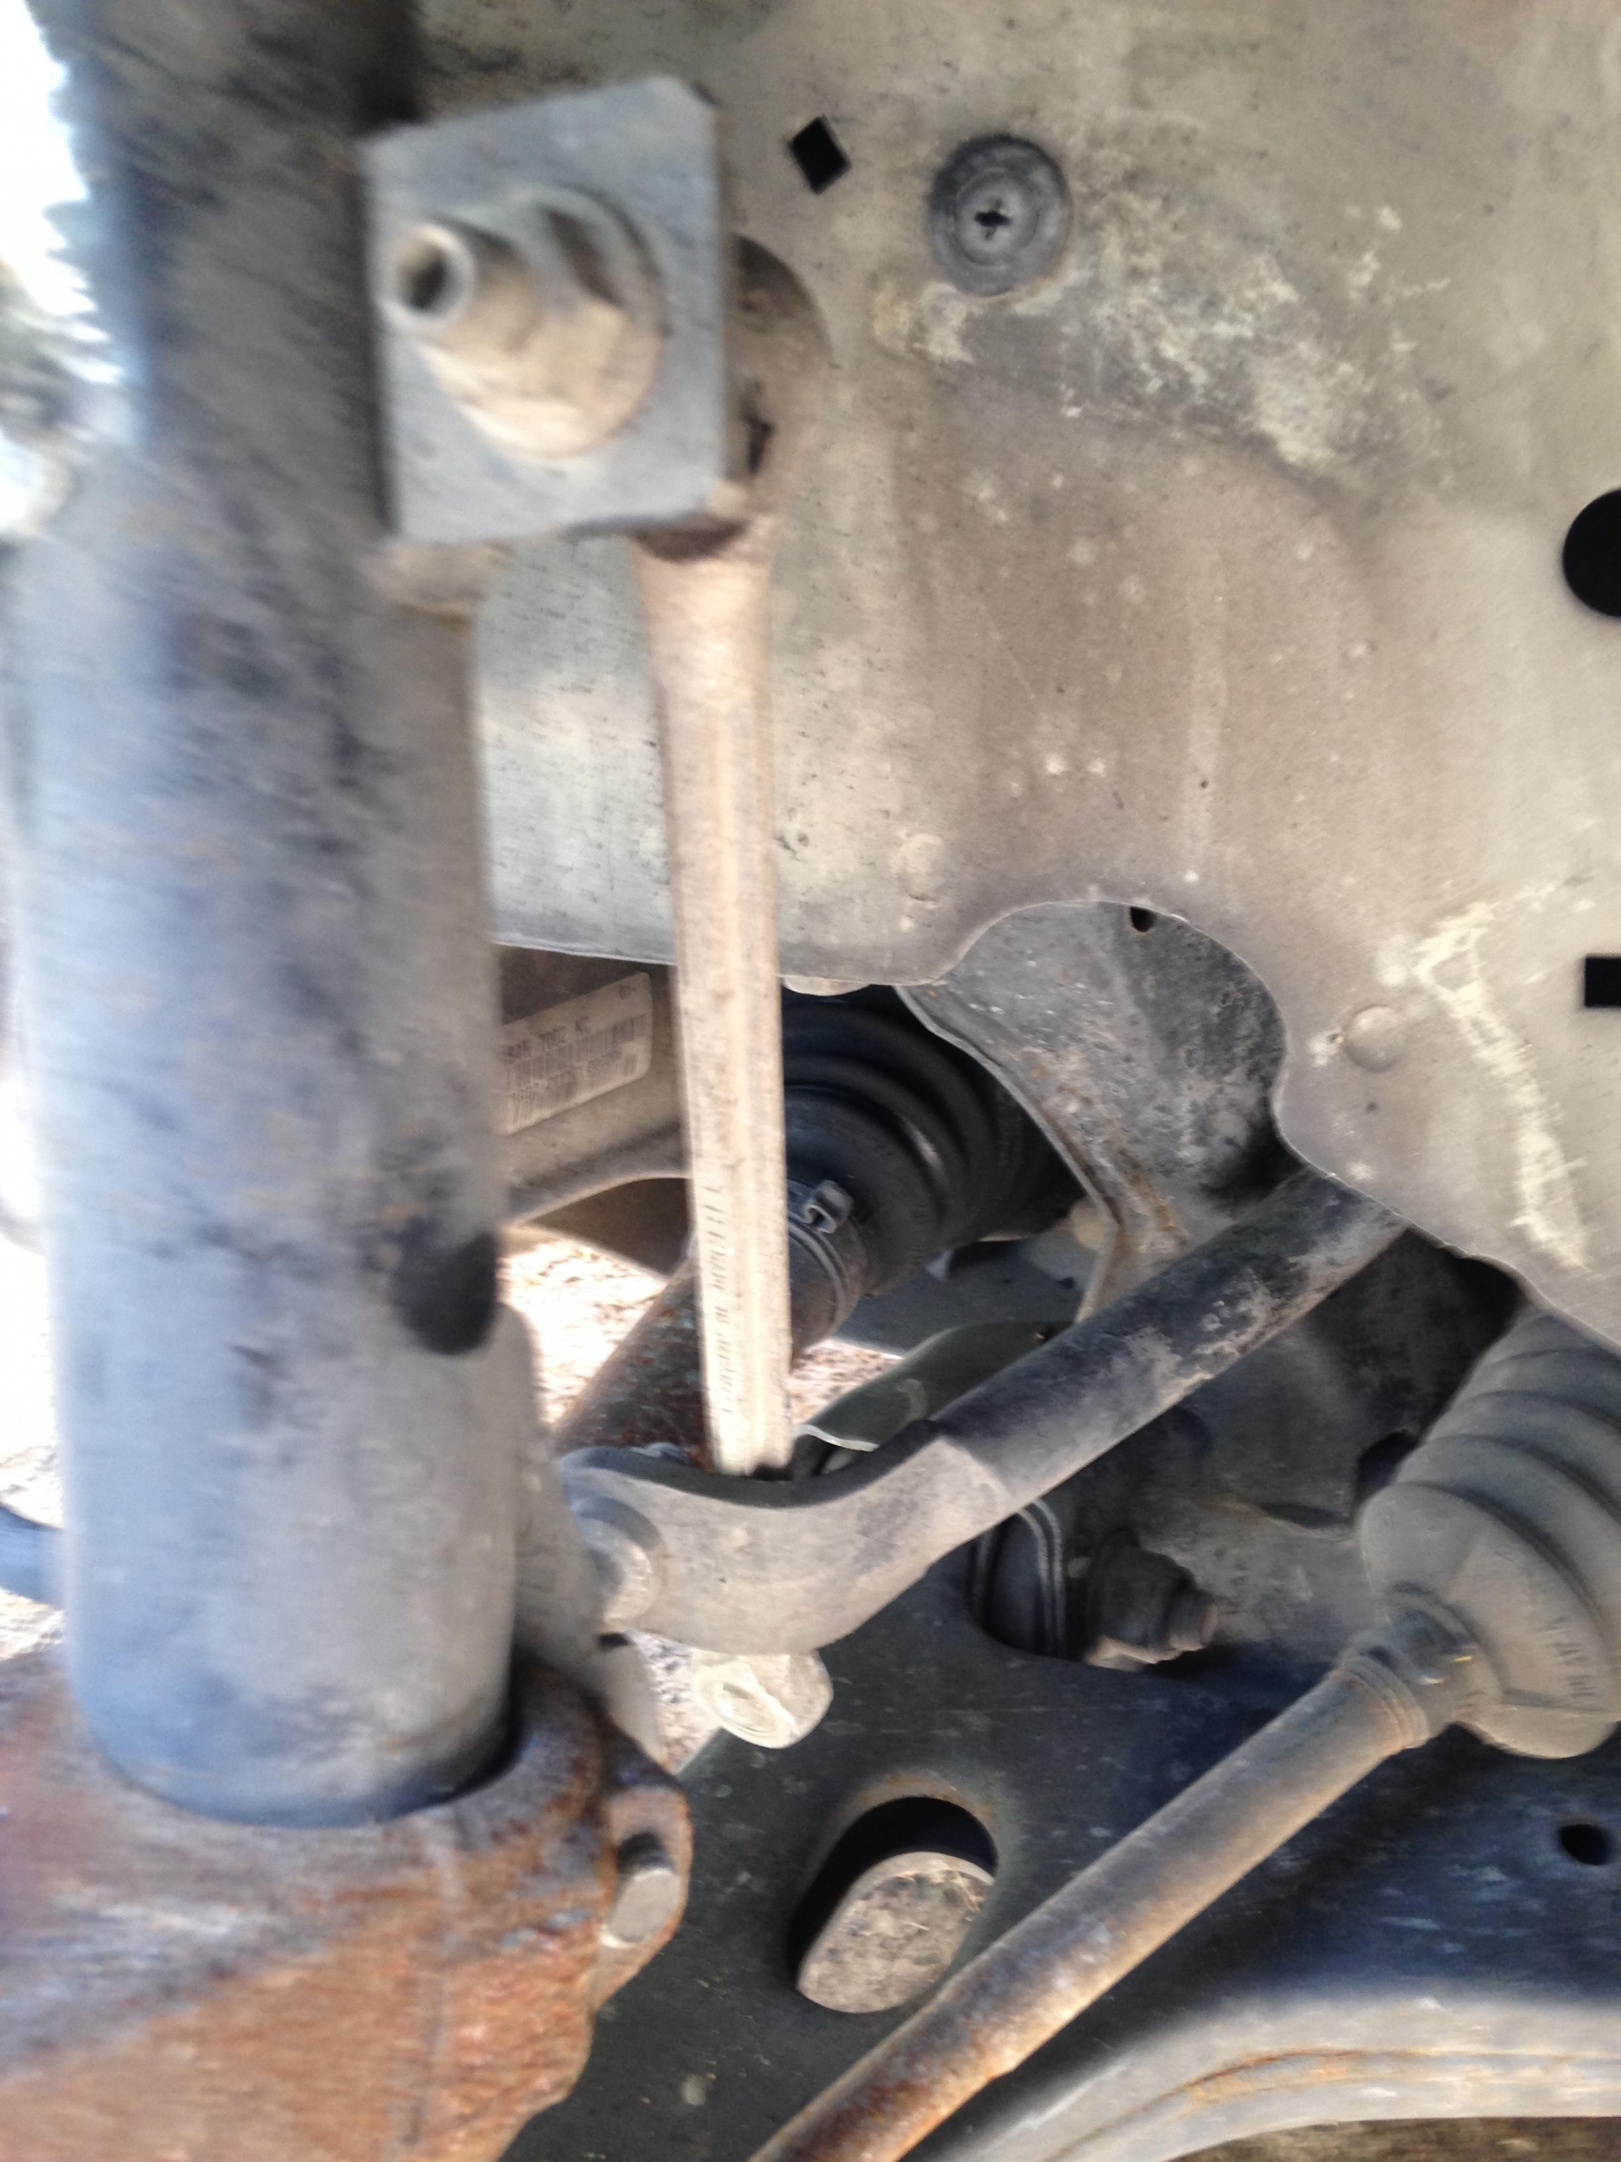 Help!! Plowed through a pothole damaged tie rod, ball joints and God knows what else.-image_1473972550727.jpg